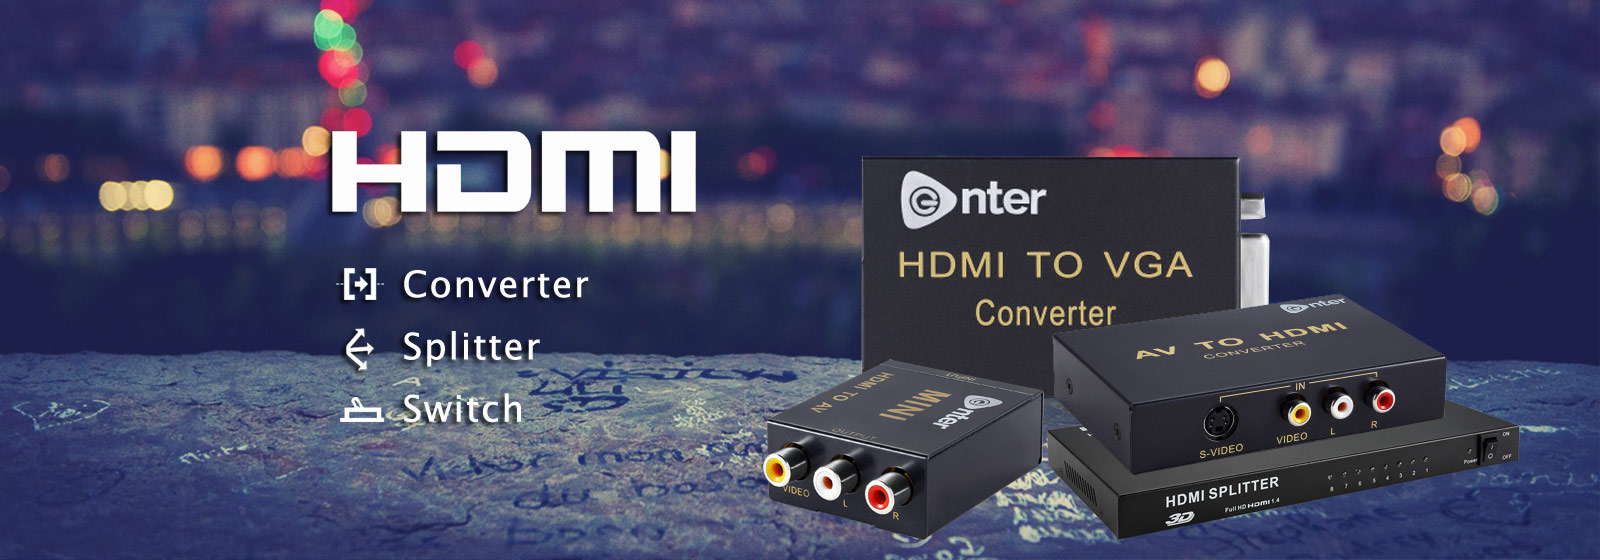 HDMI_splitter